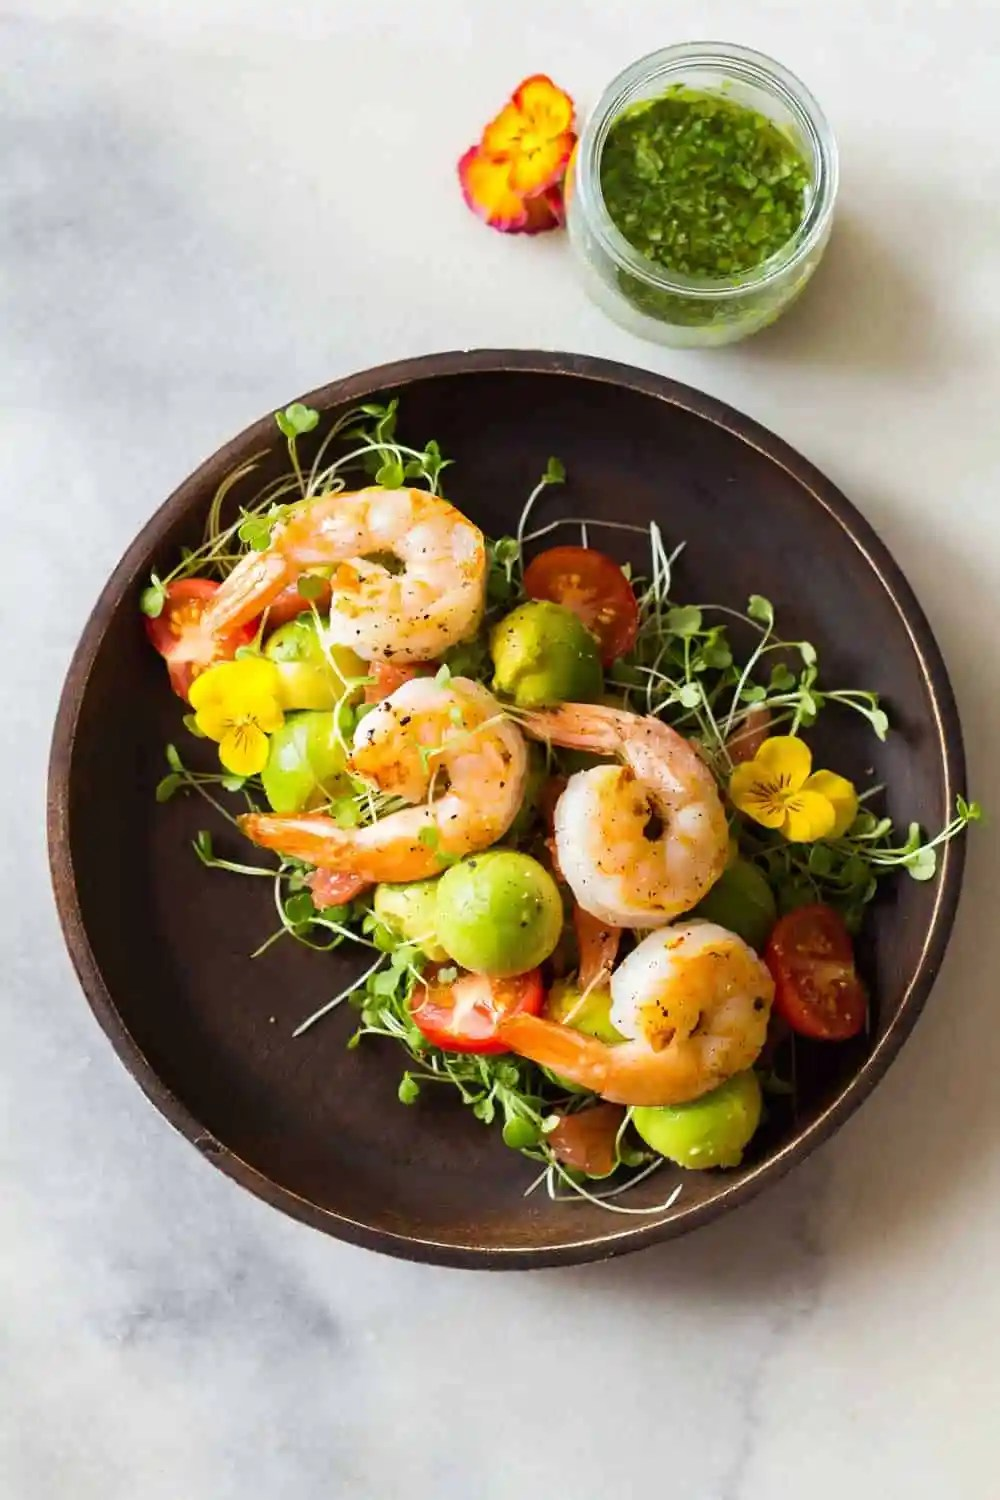 Shrimp, avocado, tomato, arugula and grapefruit with cilantro dressing. Imagine the flavor explosion when you take a bite of this Shrimp Avocado Salad!